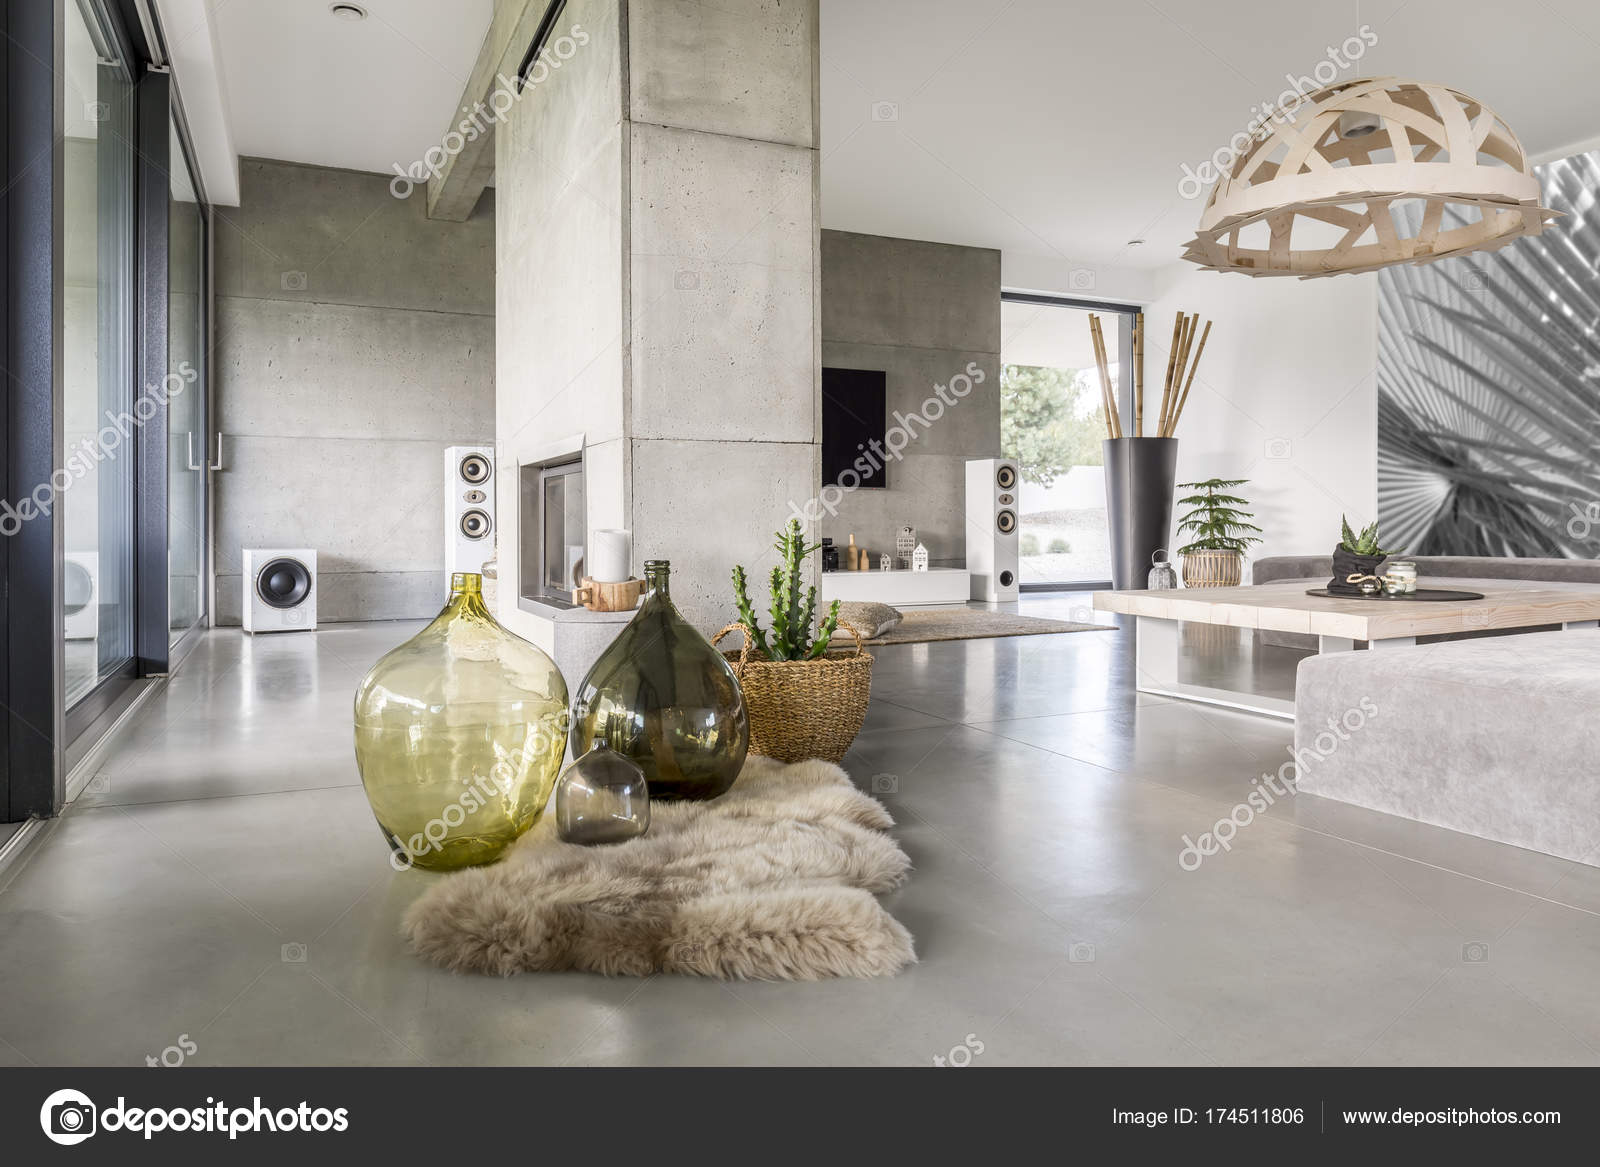 Big glass vases stock photo photographee 174511806 big decorative glass vases standing on soft rug placed next to potted plant photo by photographee reviewsmspy